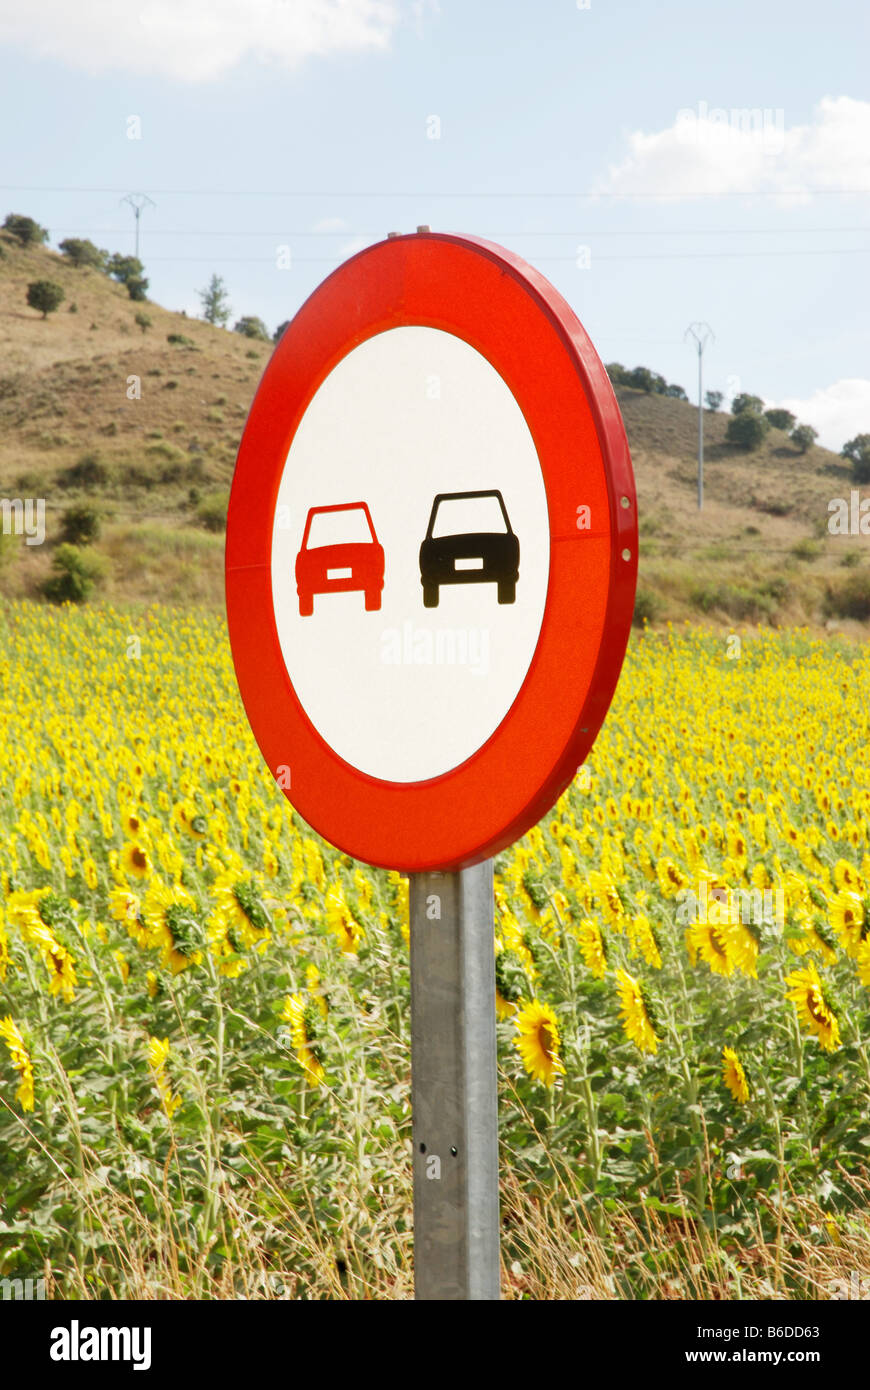 No overtaking sign. - Stock Image